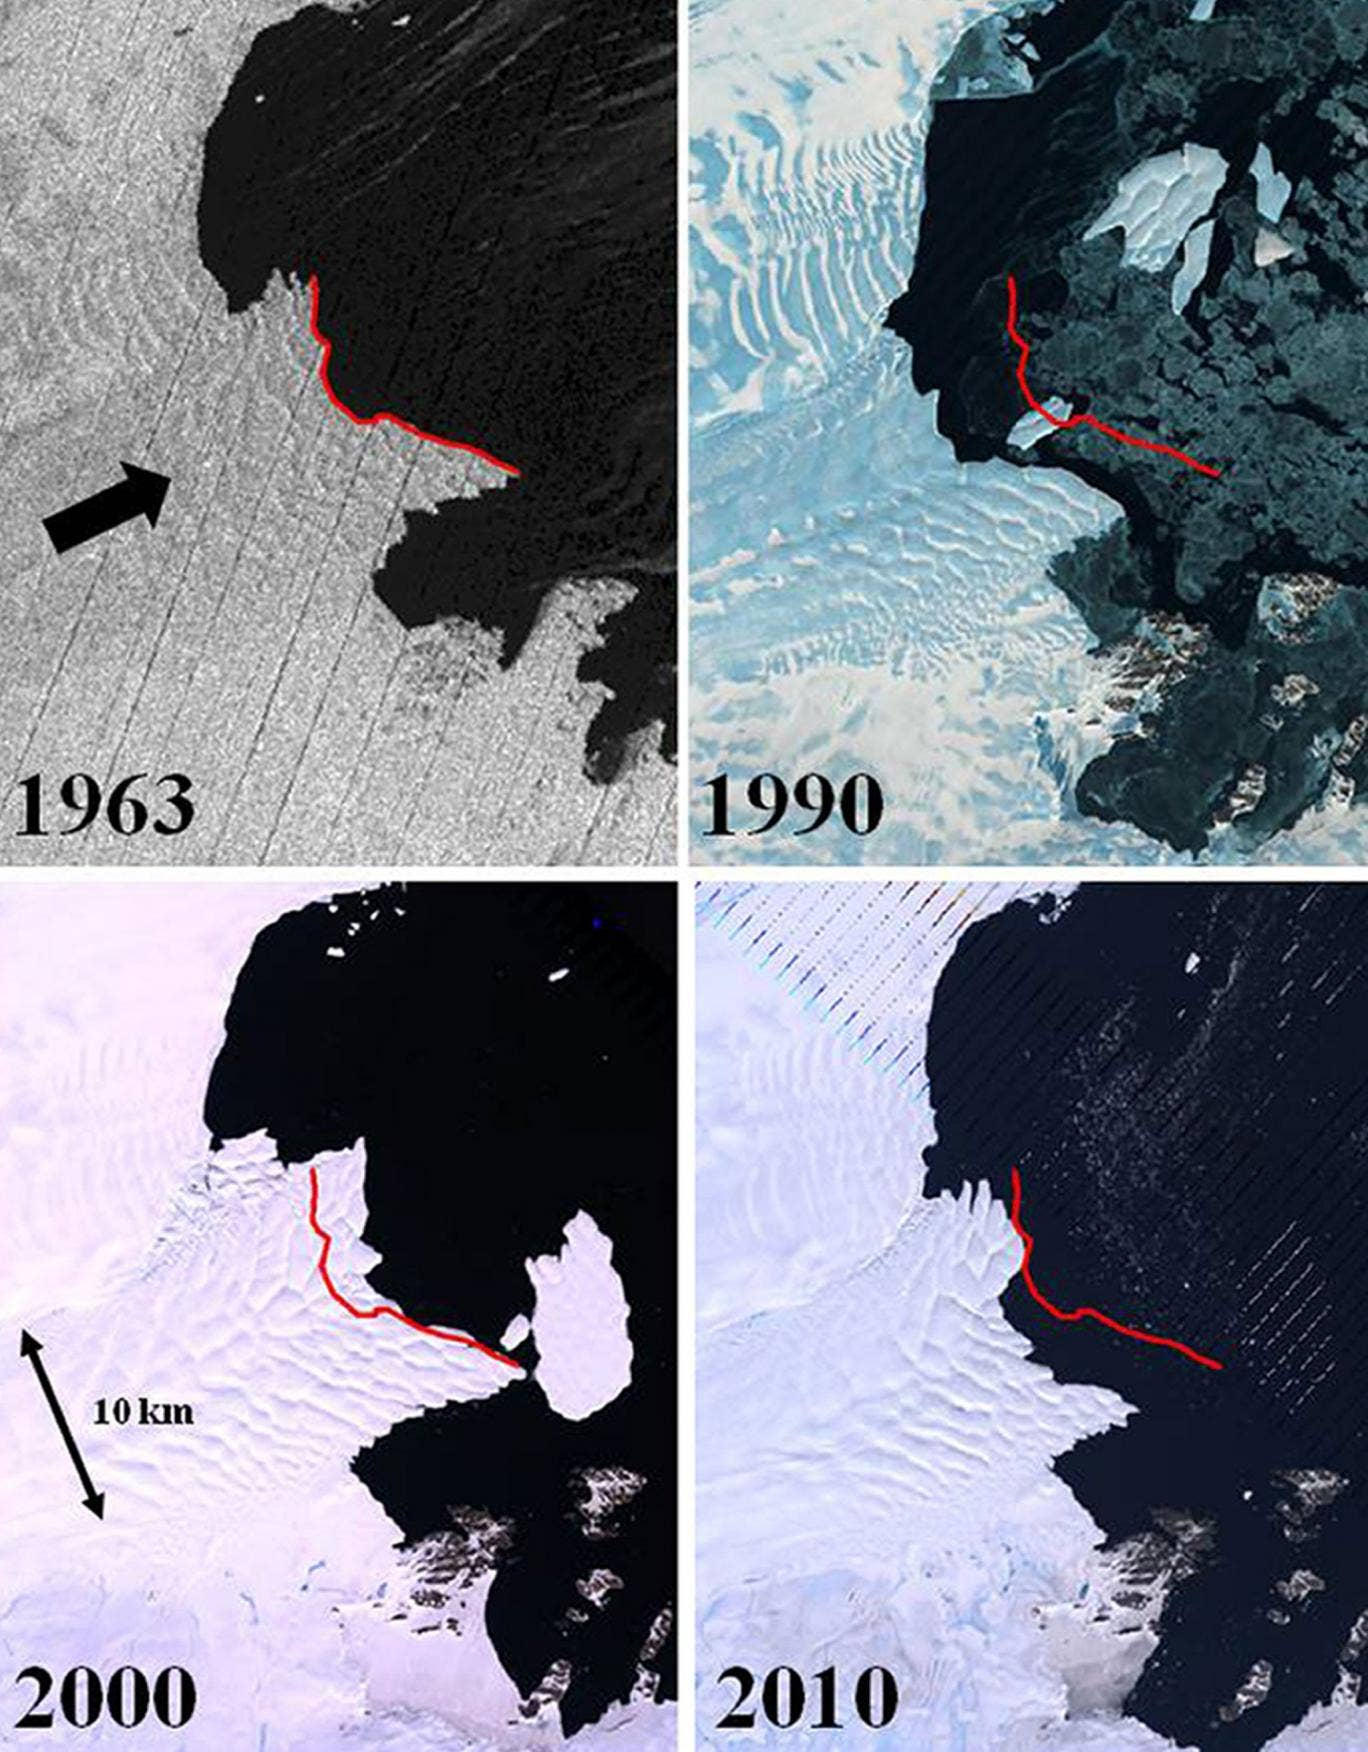 Satellite image composite (Vanderford Glacier, Wilkes Land) with the panels showing satellite imagery of Vanderford Glacier, Wilkes Land, East Antarctica